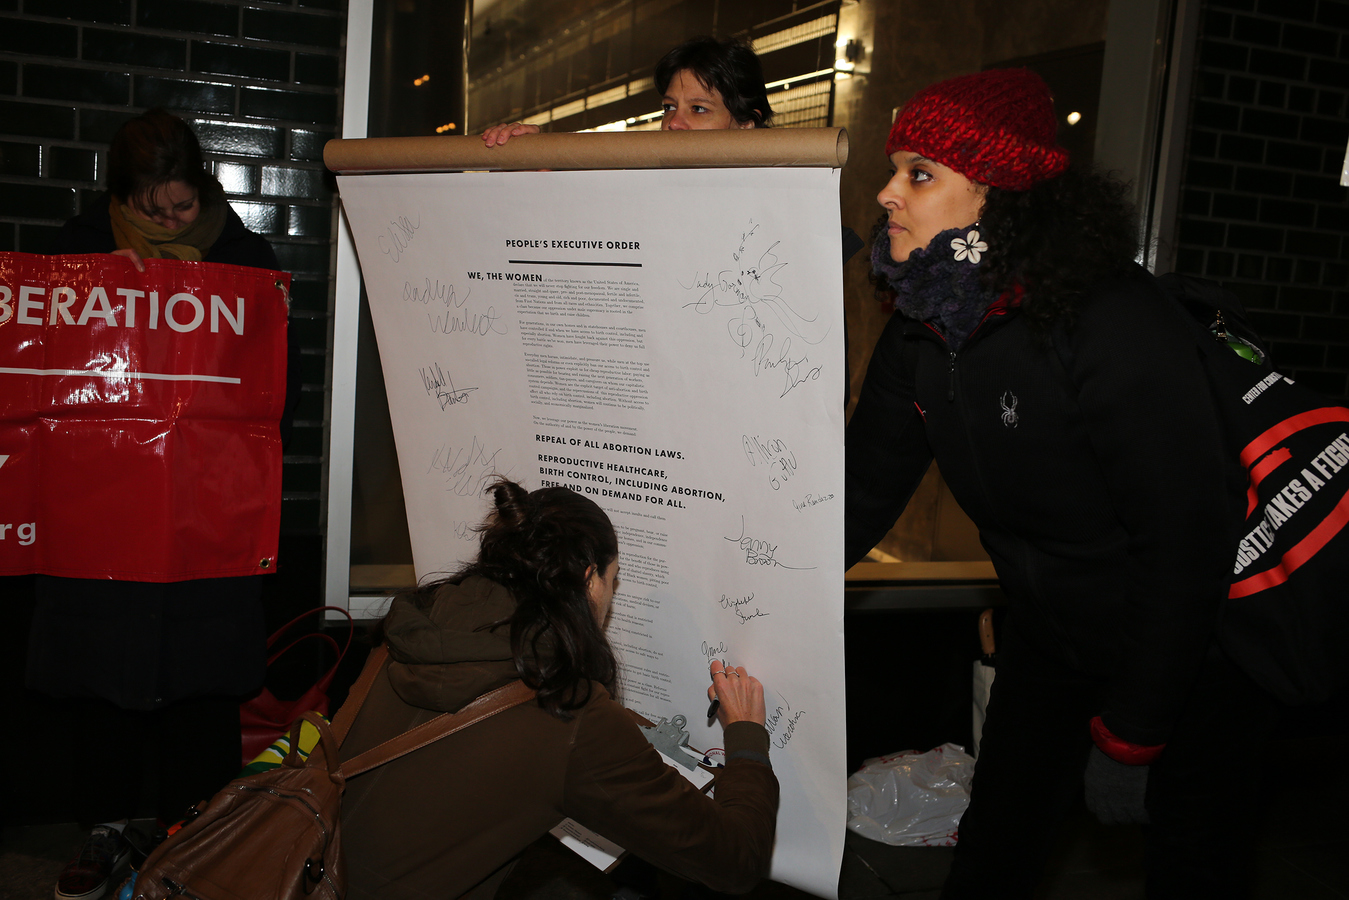 National Women's Liberation People's Executive Order to Repeal All Abortion Laws NYC Office of the Governor 11/12/19